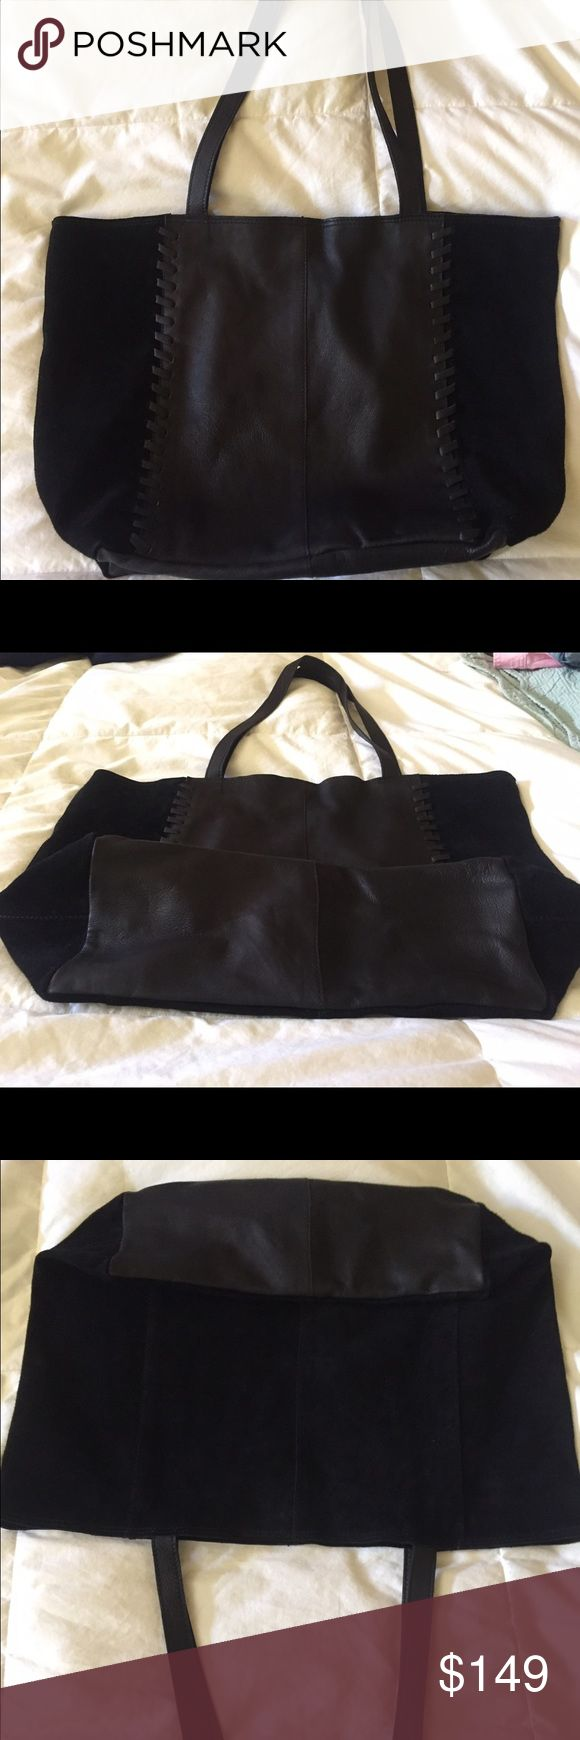 Purse Leather and suede black shoulder bag from Top Shop. Front is unique braiding attach to the suede. Beautiful purse. Pics don't do it justice! Also lightweight💕 NEW WITHOUT TAGS. Never used it.  I have many black purses😳 Topshop Bags Shoulder Bags